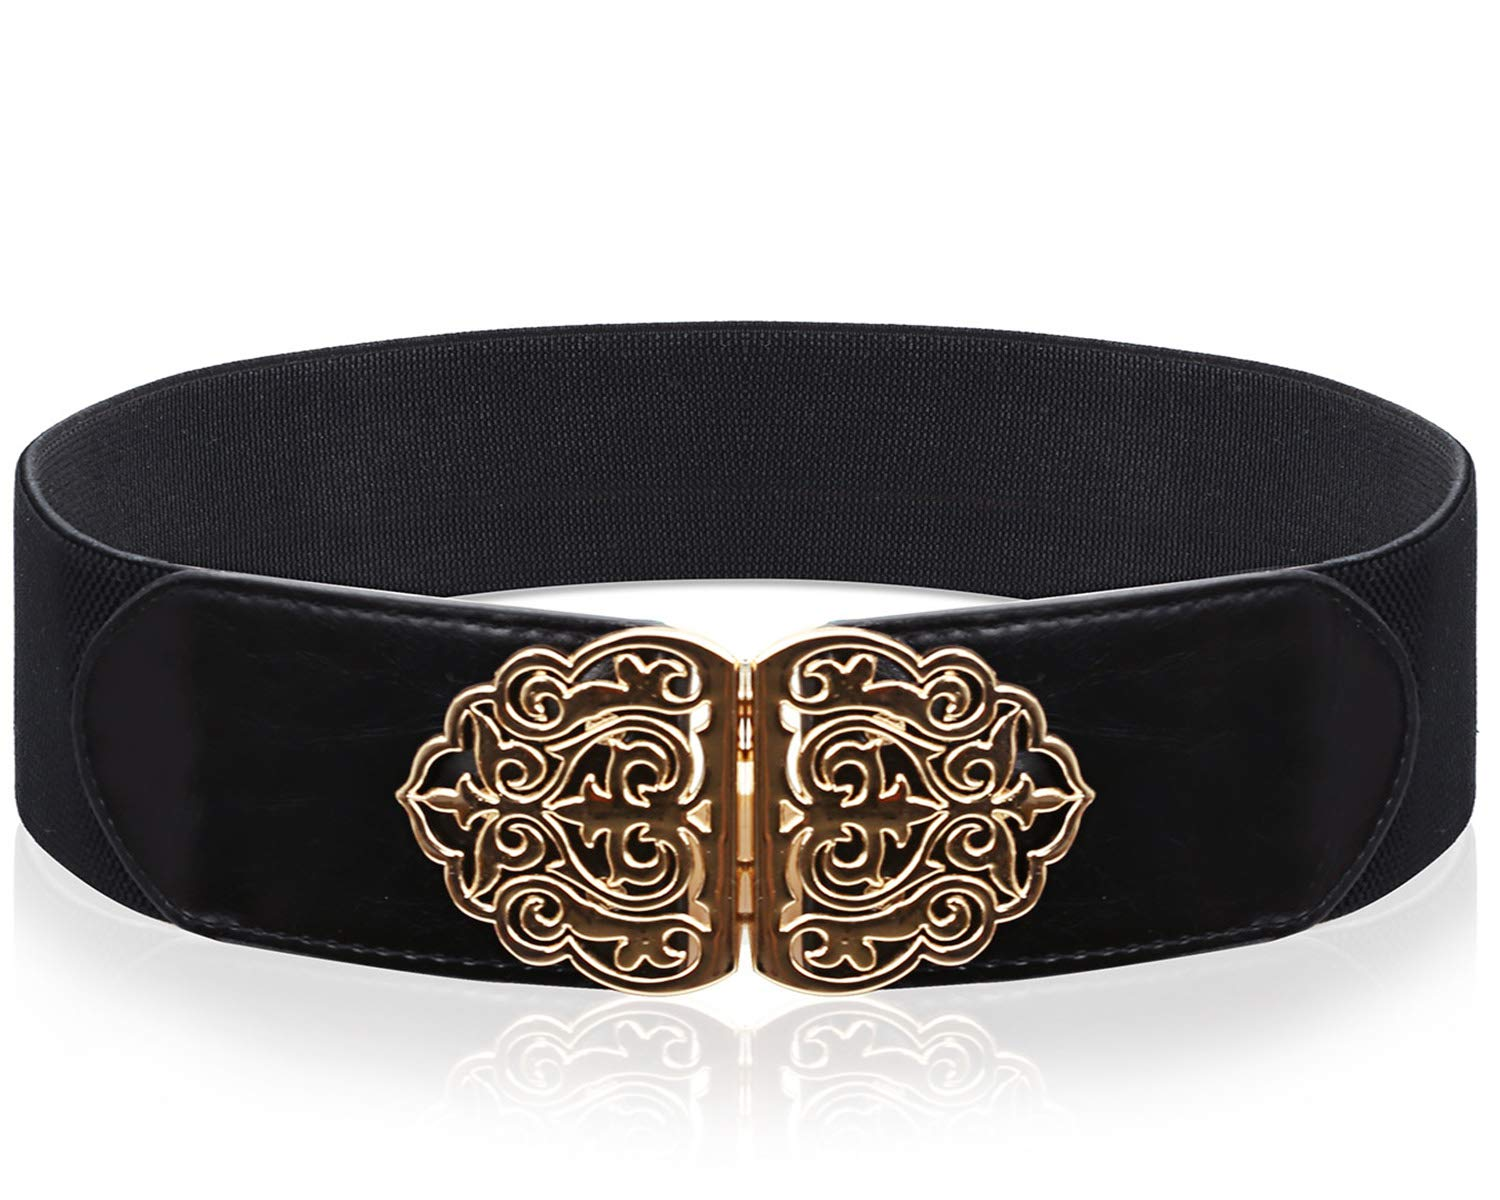 BELLEZIVA Women Black Belts Western Elastic Wide Renaissance Waist Belt for Pants Dresses